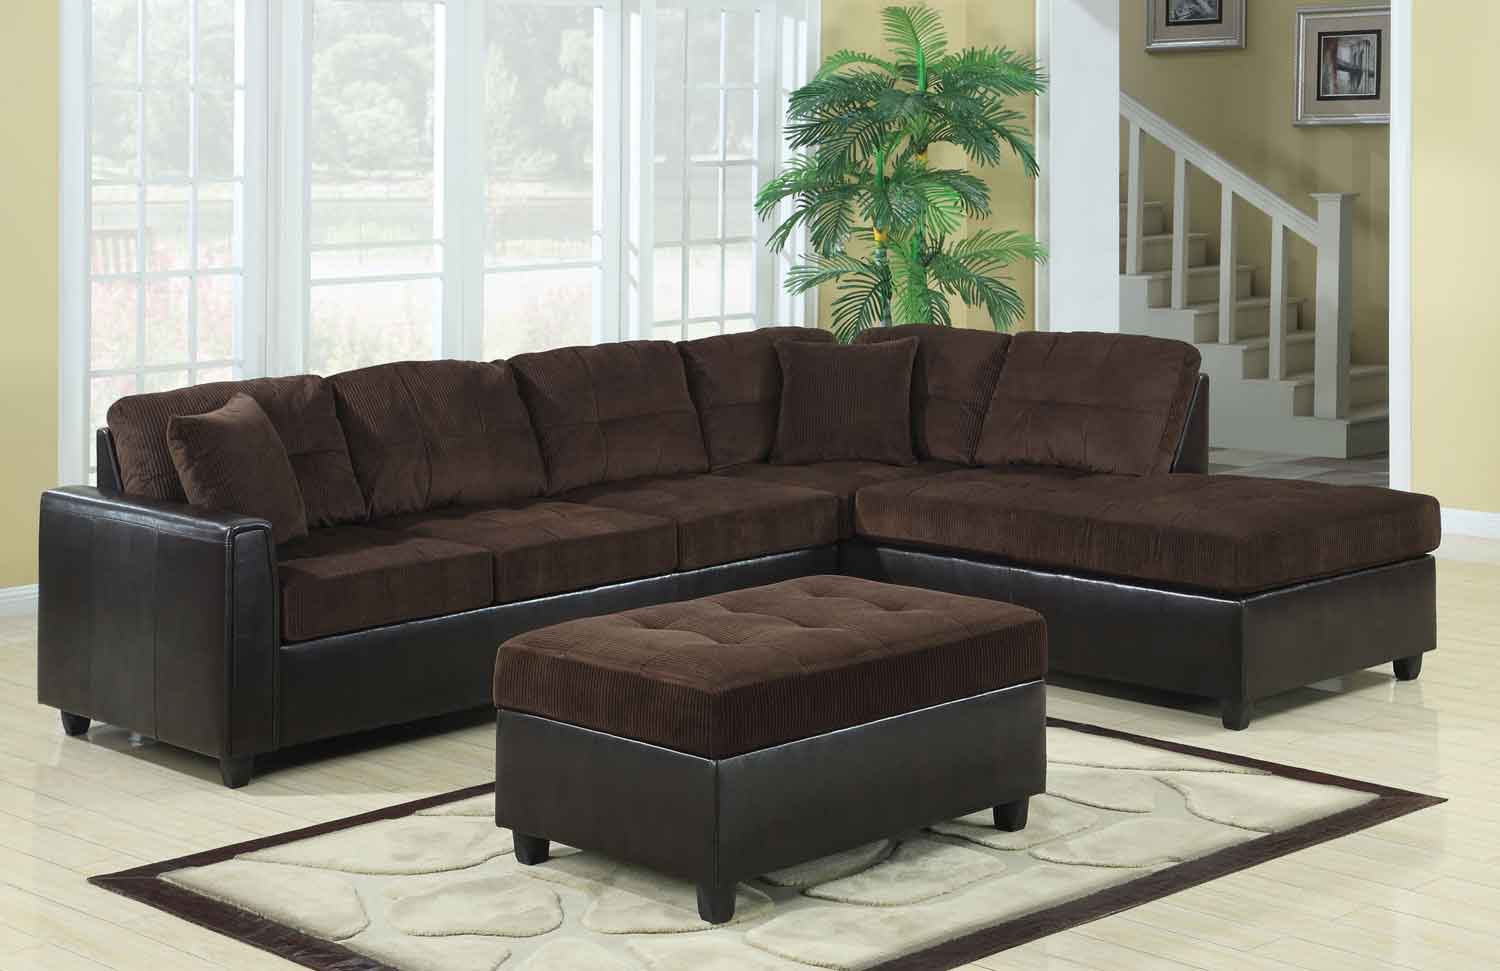 Coaster Henri Reversible Sectional Sofa Set Chocolate